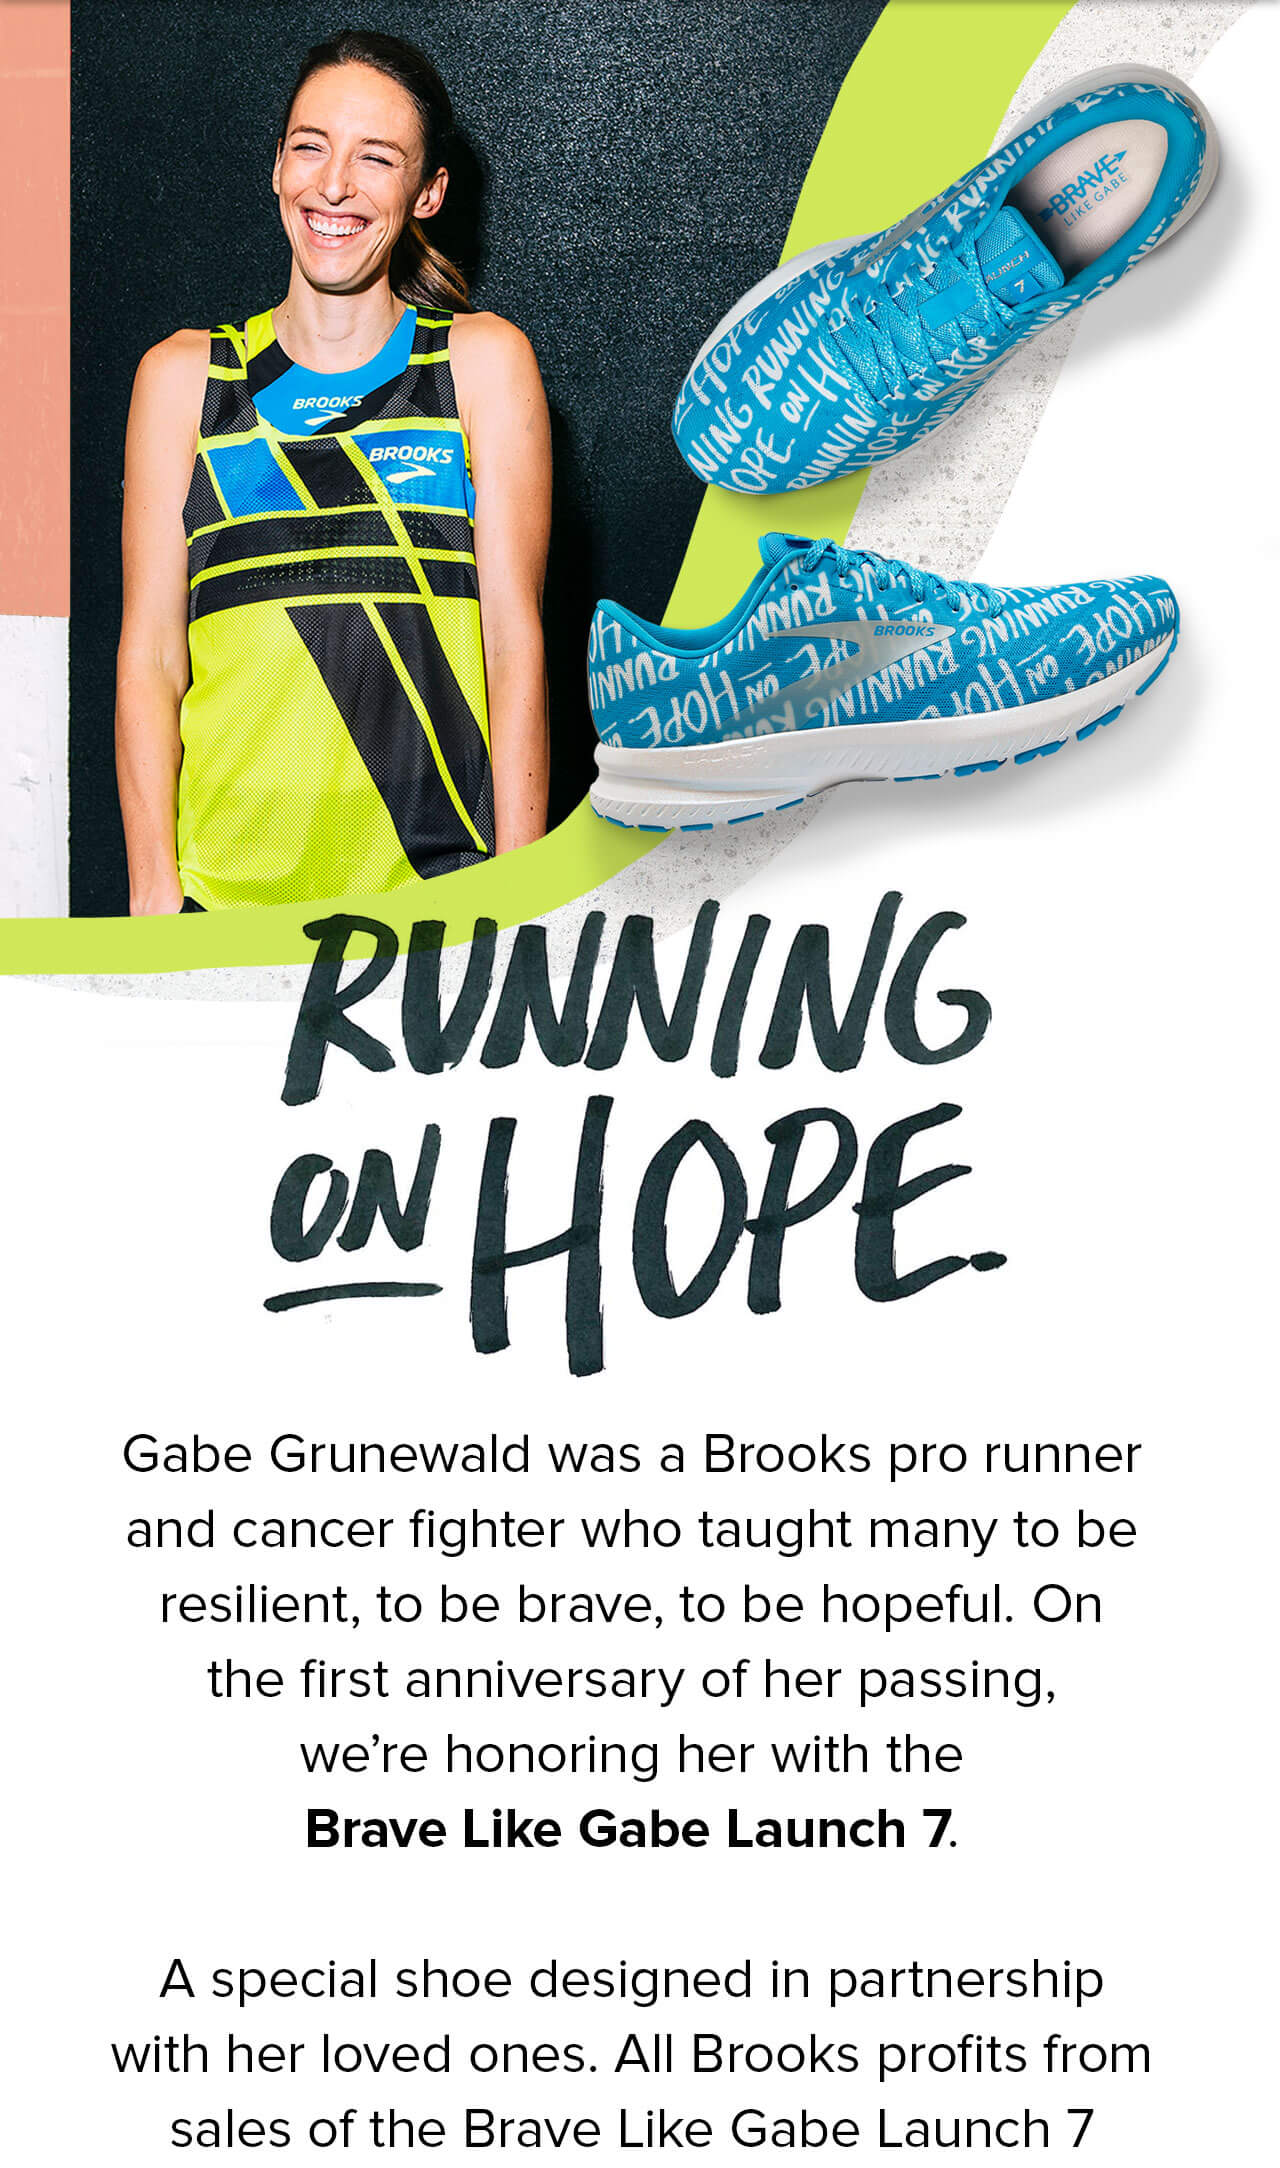 Running on hope   Gabe Grunewald was a Brooks pro runner and cancer fighter who taught many to be resilient, to be brave, to be hopeful. On the first anniversary of her passing, we're honoring her with the Brave Like Gabe Launch 7. A special shoe designed in partnership with her loved ones. All Brooks profits from sales of the Brave Like Gabe Launch 7 will be donated to the Fred Hutchinson Cancer Research Center on behalf of the Brave Like Gabe Foundation.